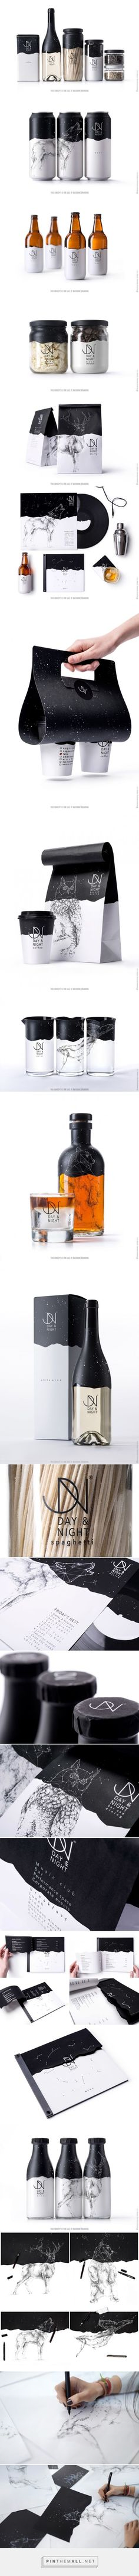 Day & Night packaging designed by Backbone Branding (Armenia) - www.packagingofth...